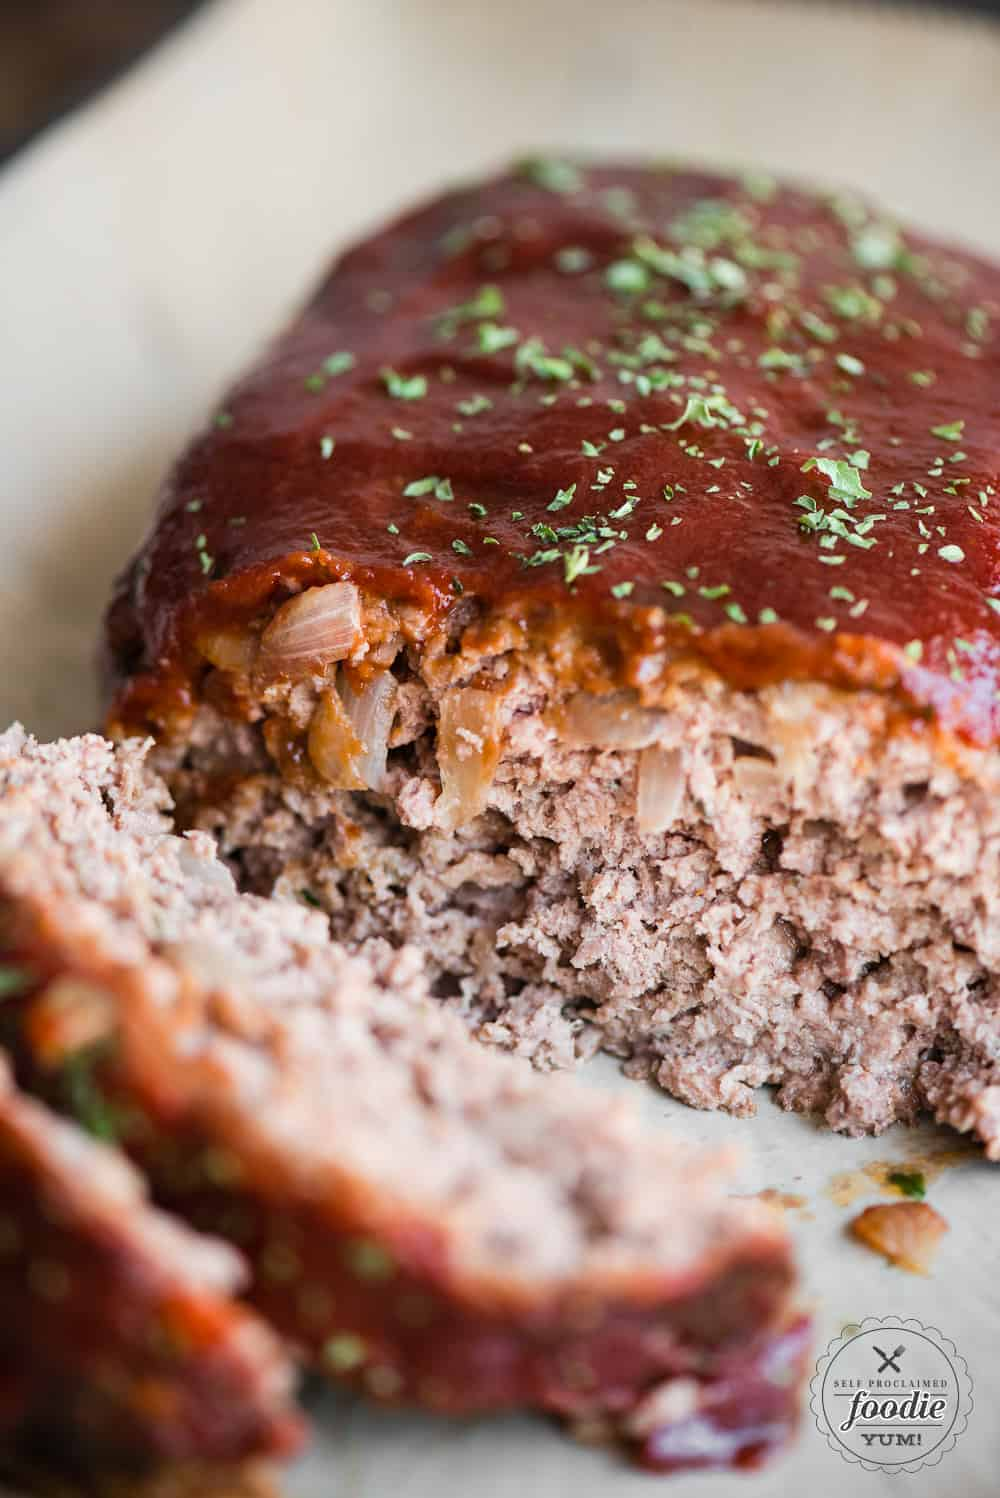 2 Lb Meatloaf Recipe With Crackers : meatloaf, recipe, crackers, Granny's, Classic, Meatloaf, Recipe, Video, Proclaimed, Foodie